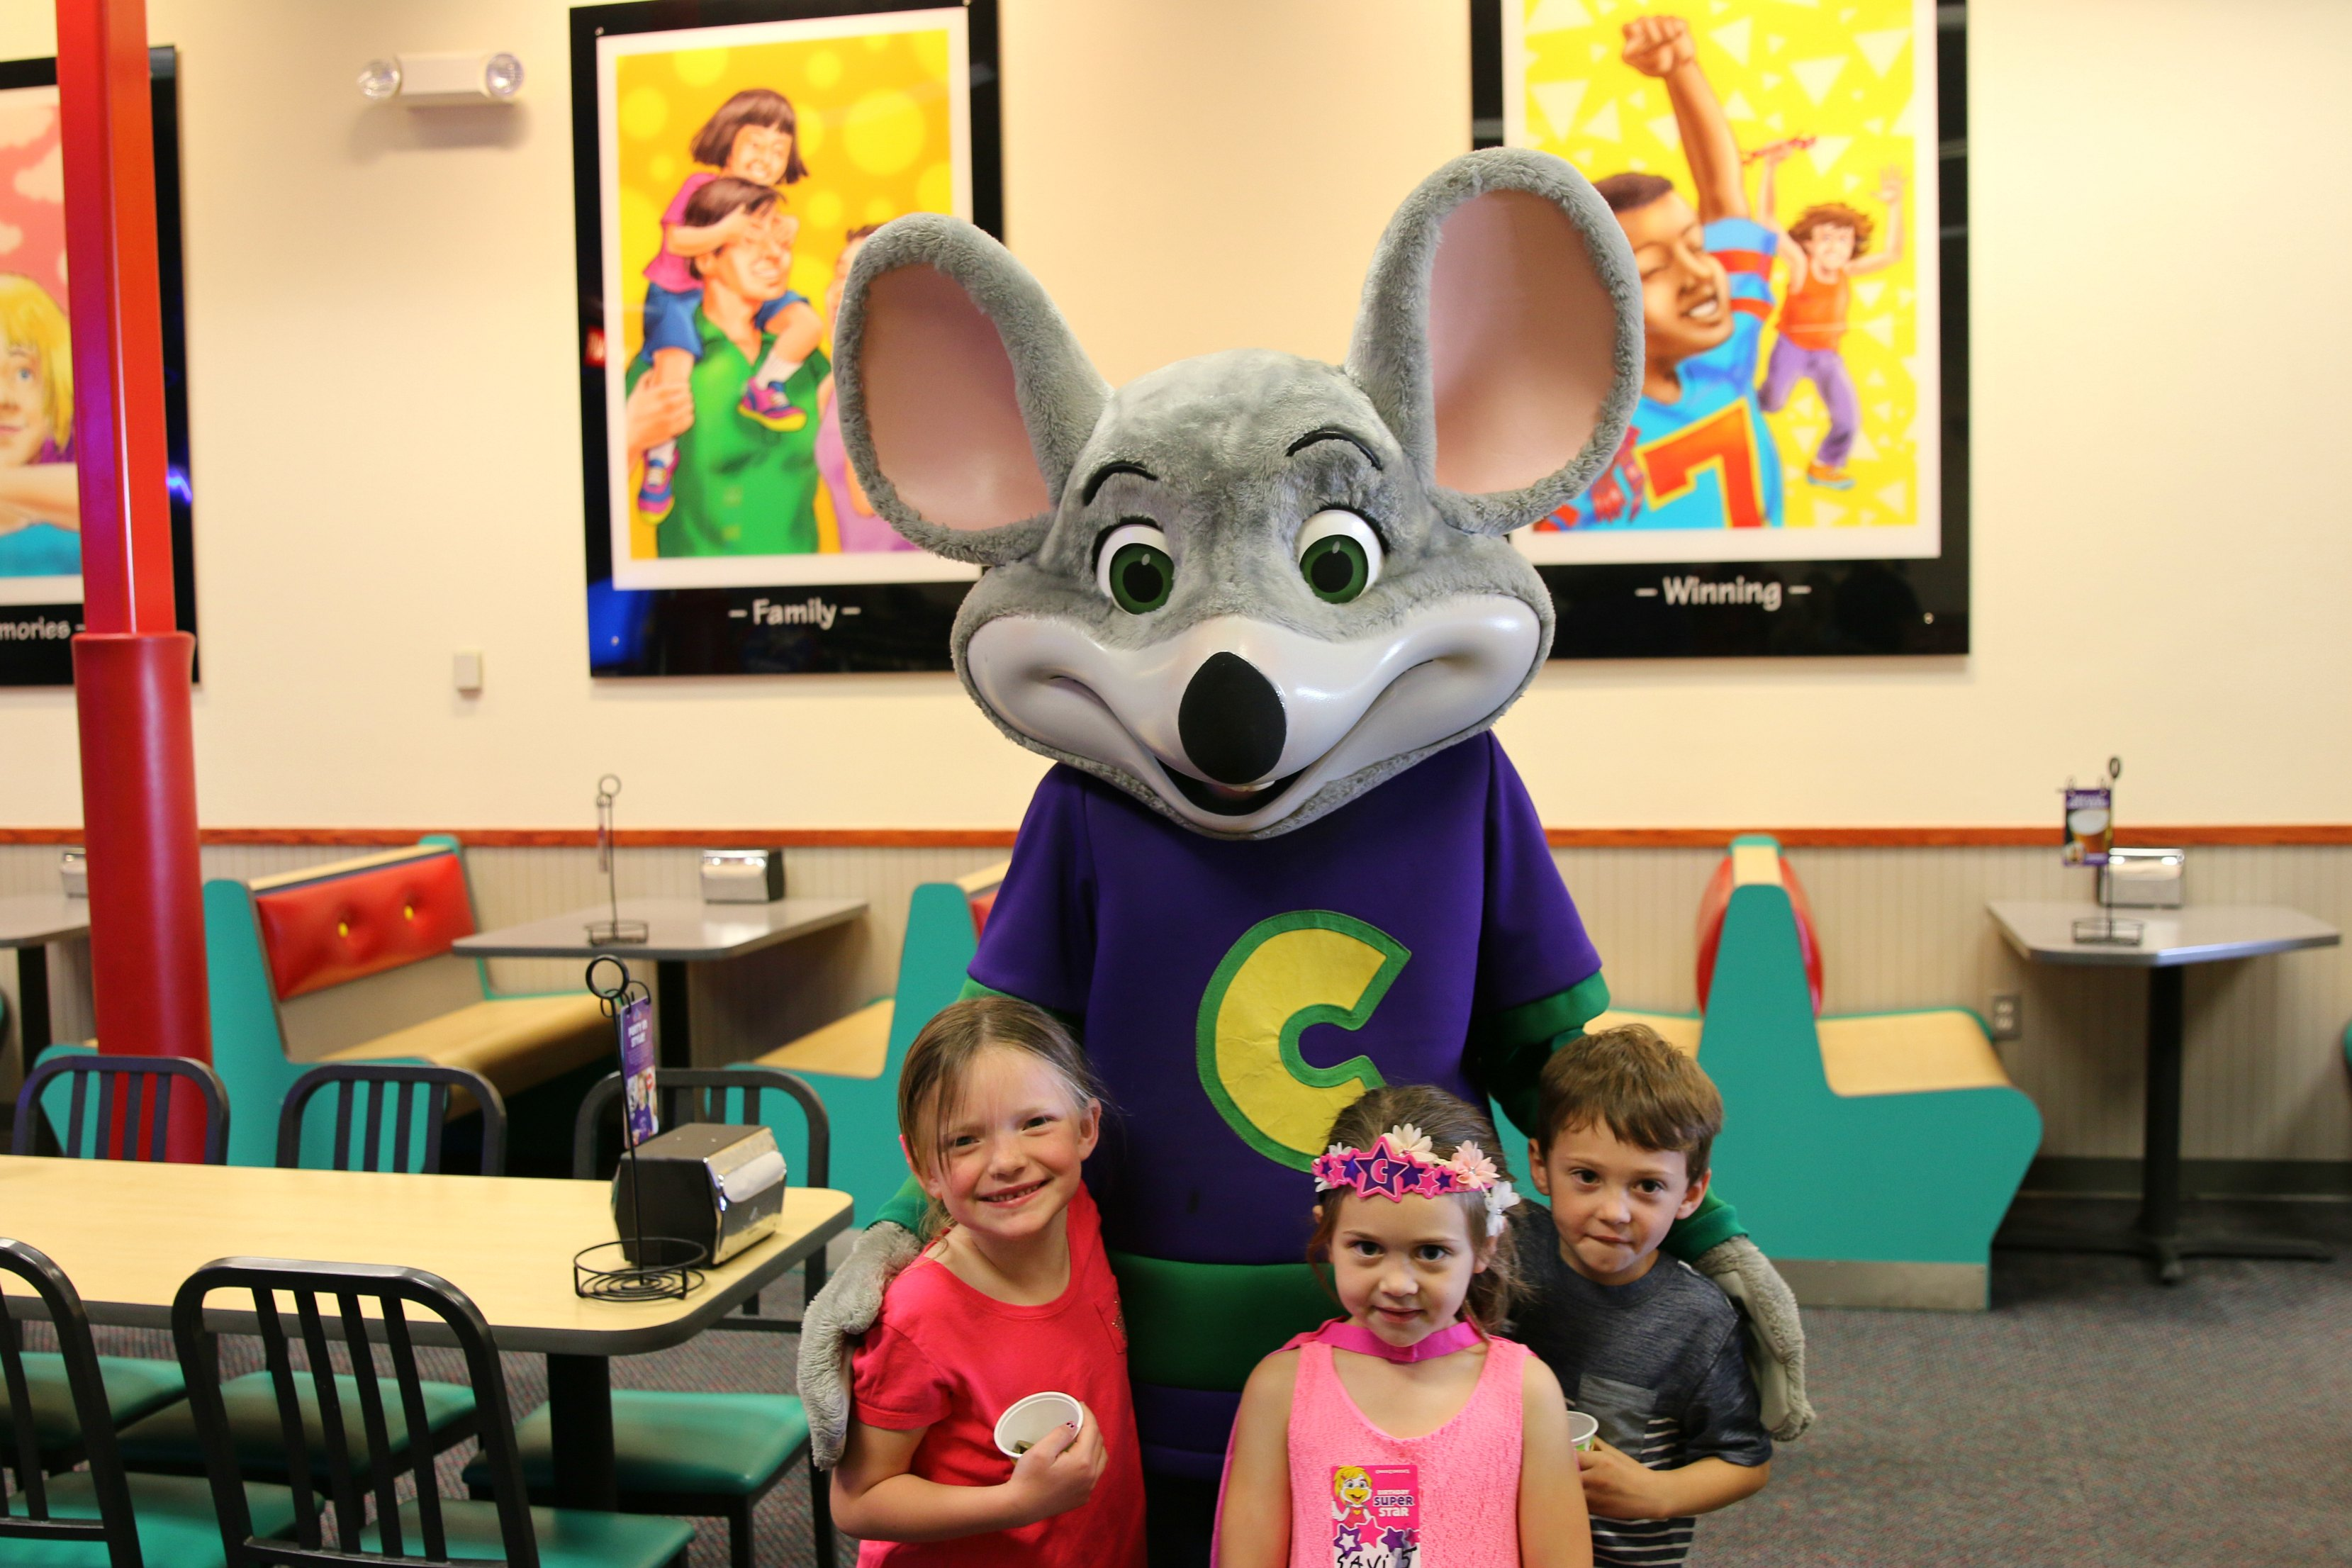 Chuck E Cheese: Celebrating 40 Years Of Fun At Chuck E. Cheese's